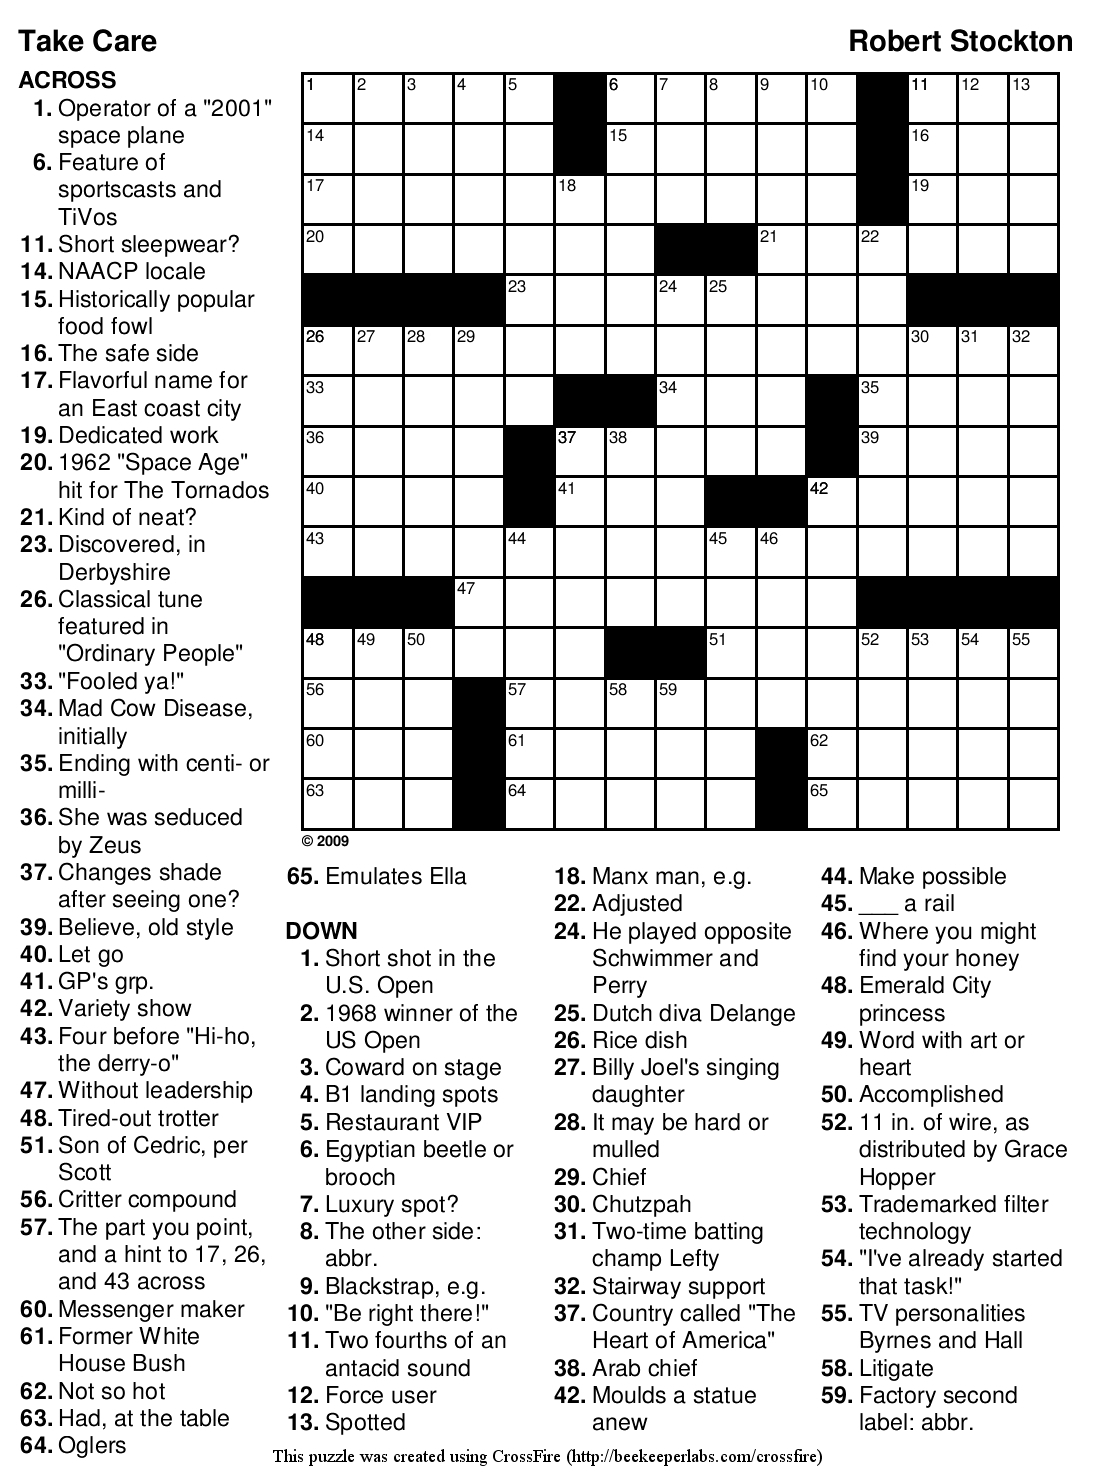 Printable Easy Sports Crossword Puzzles | Download Them Or Print - Printable Crossword Puzzles Sports